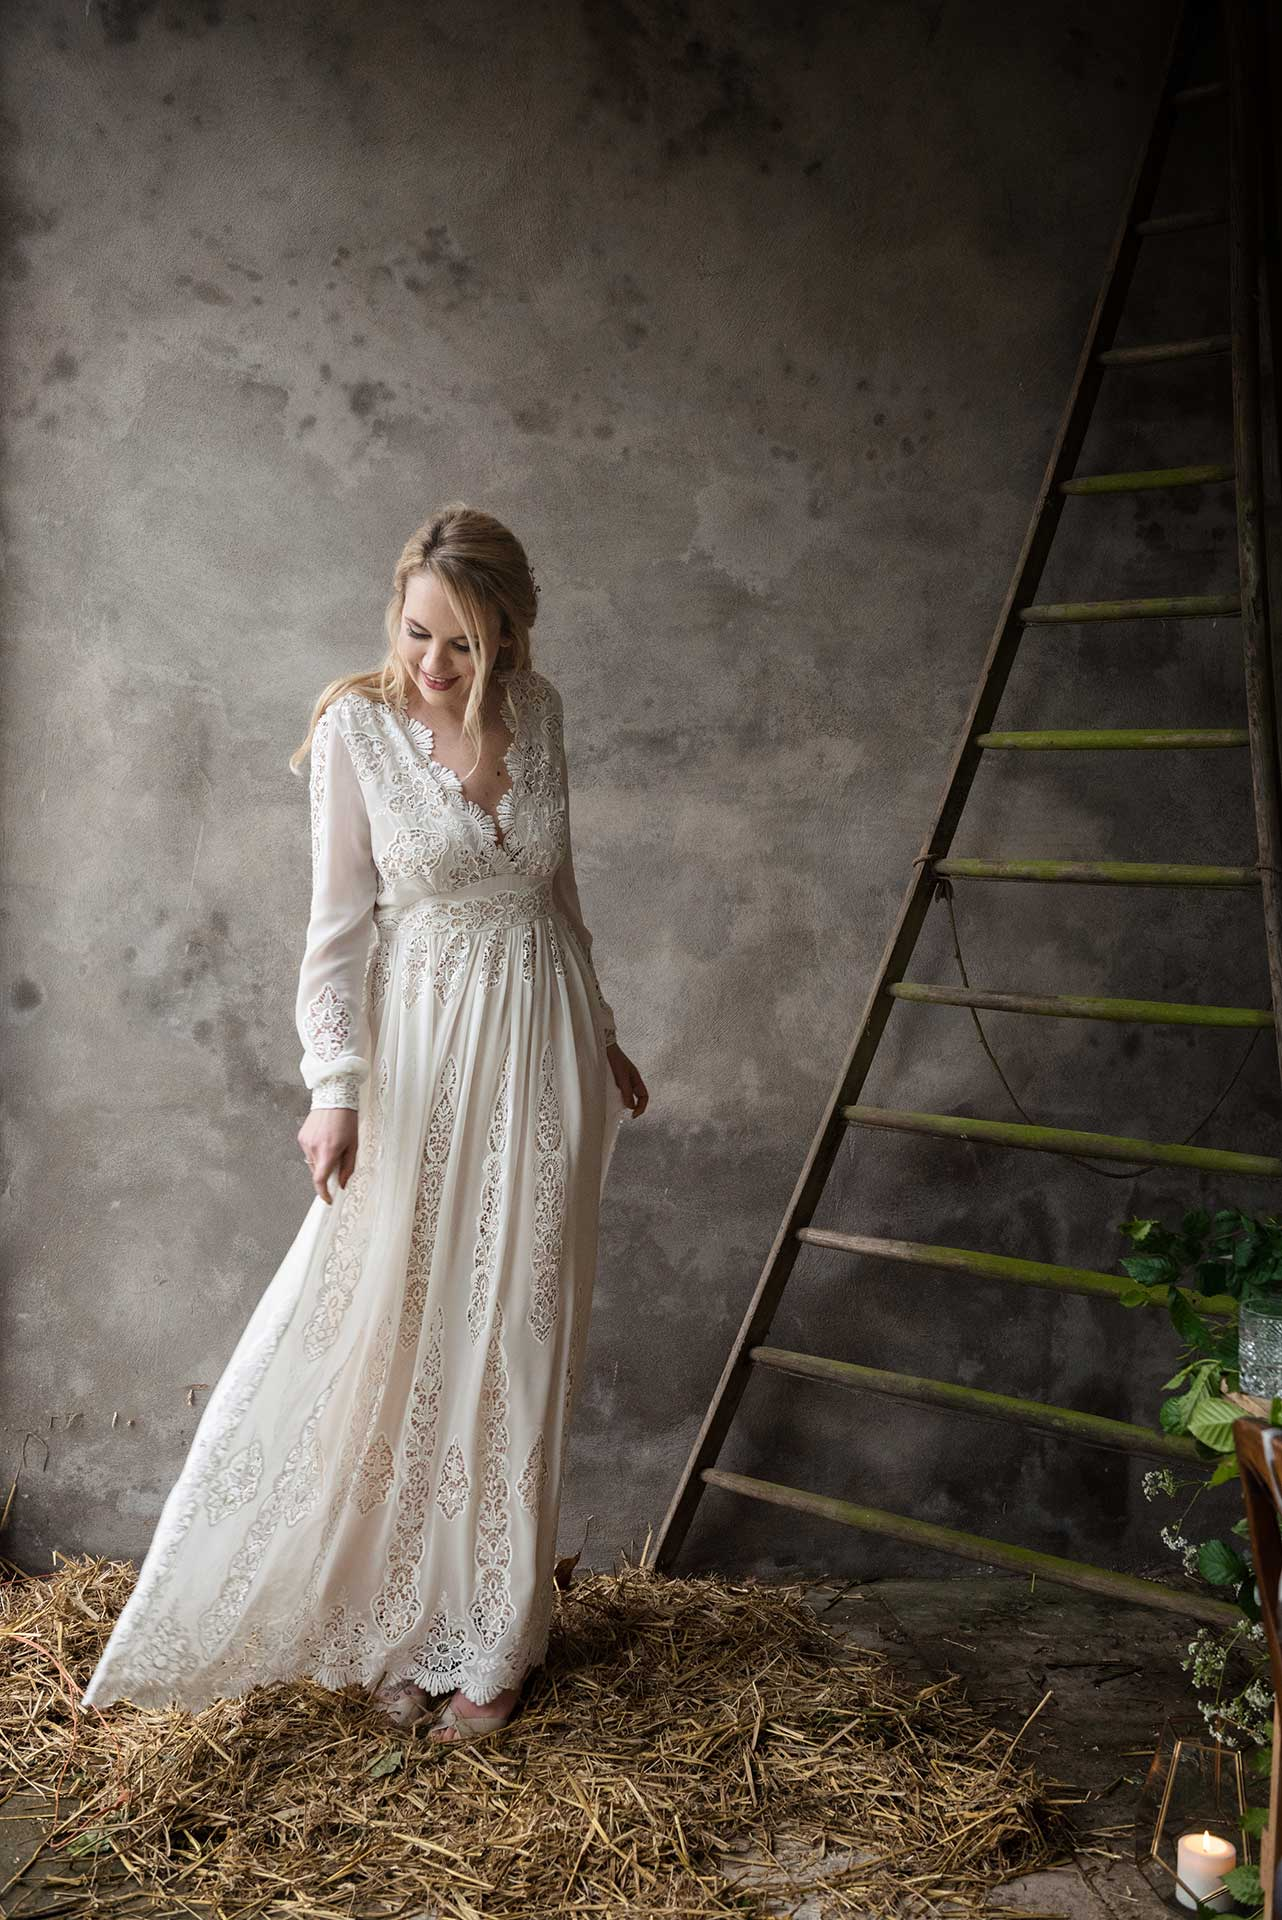 Rustic bridal fashion shoot